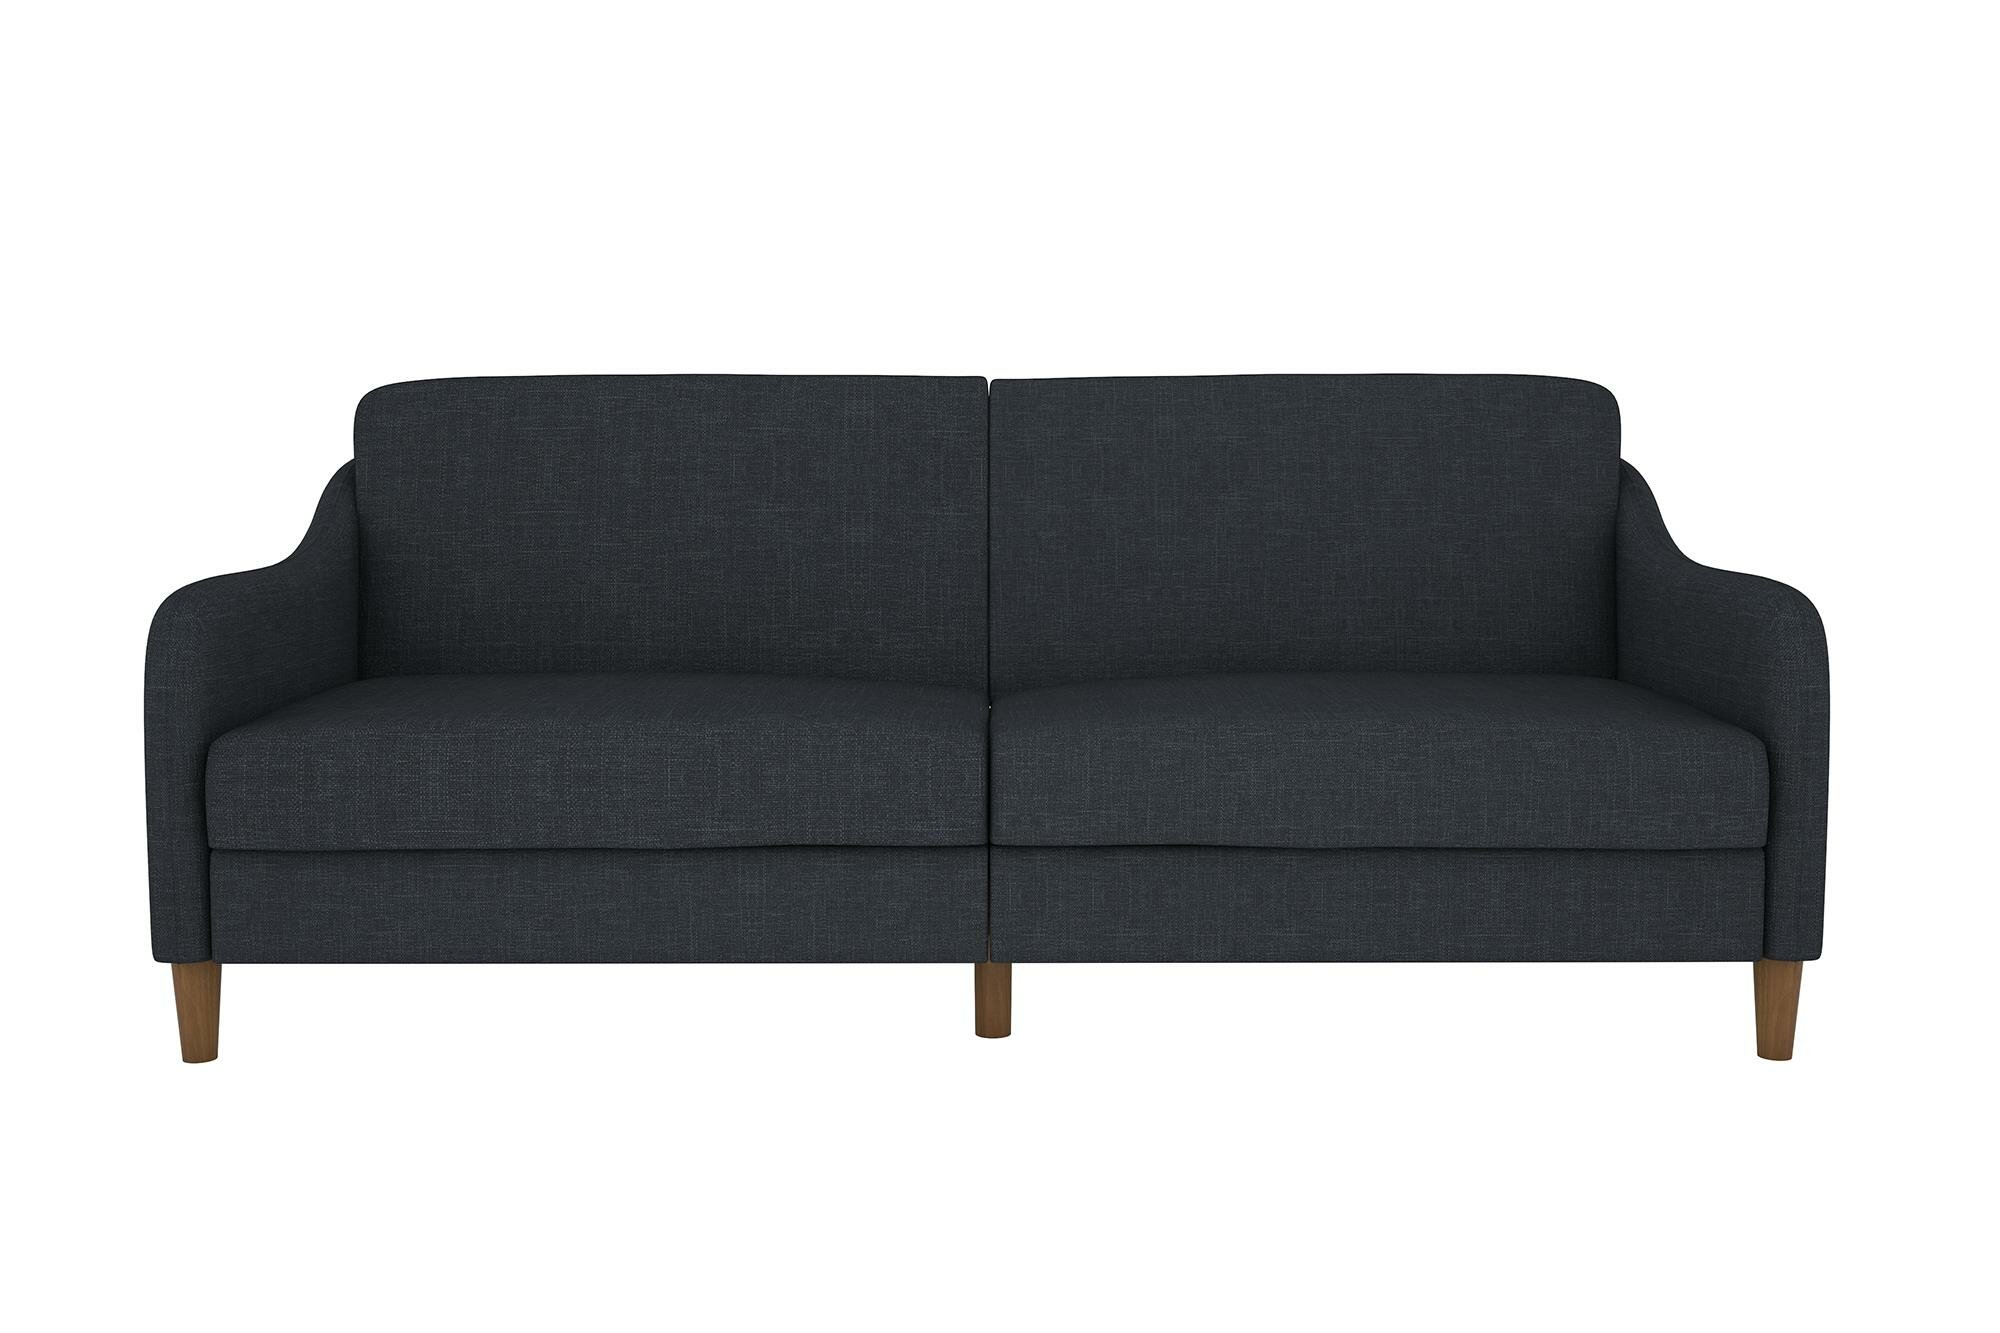 tulsa fold futons futon sleeper bed up modern pin furniture couch black recliner sofa